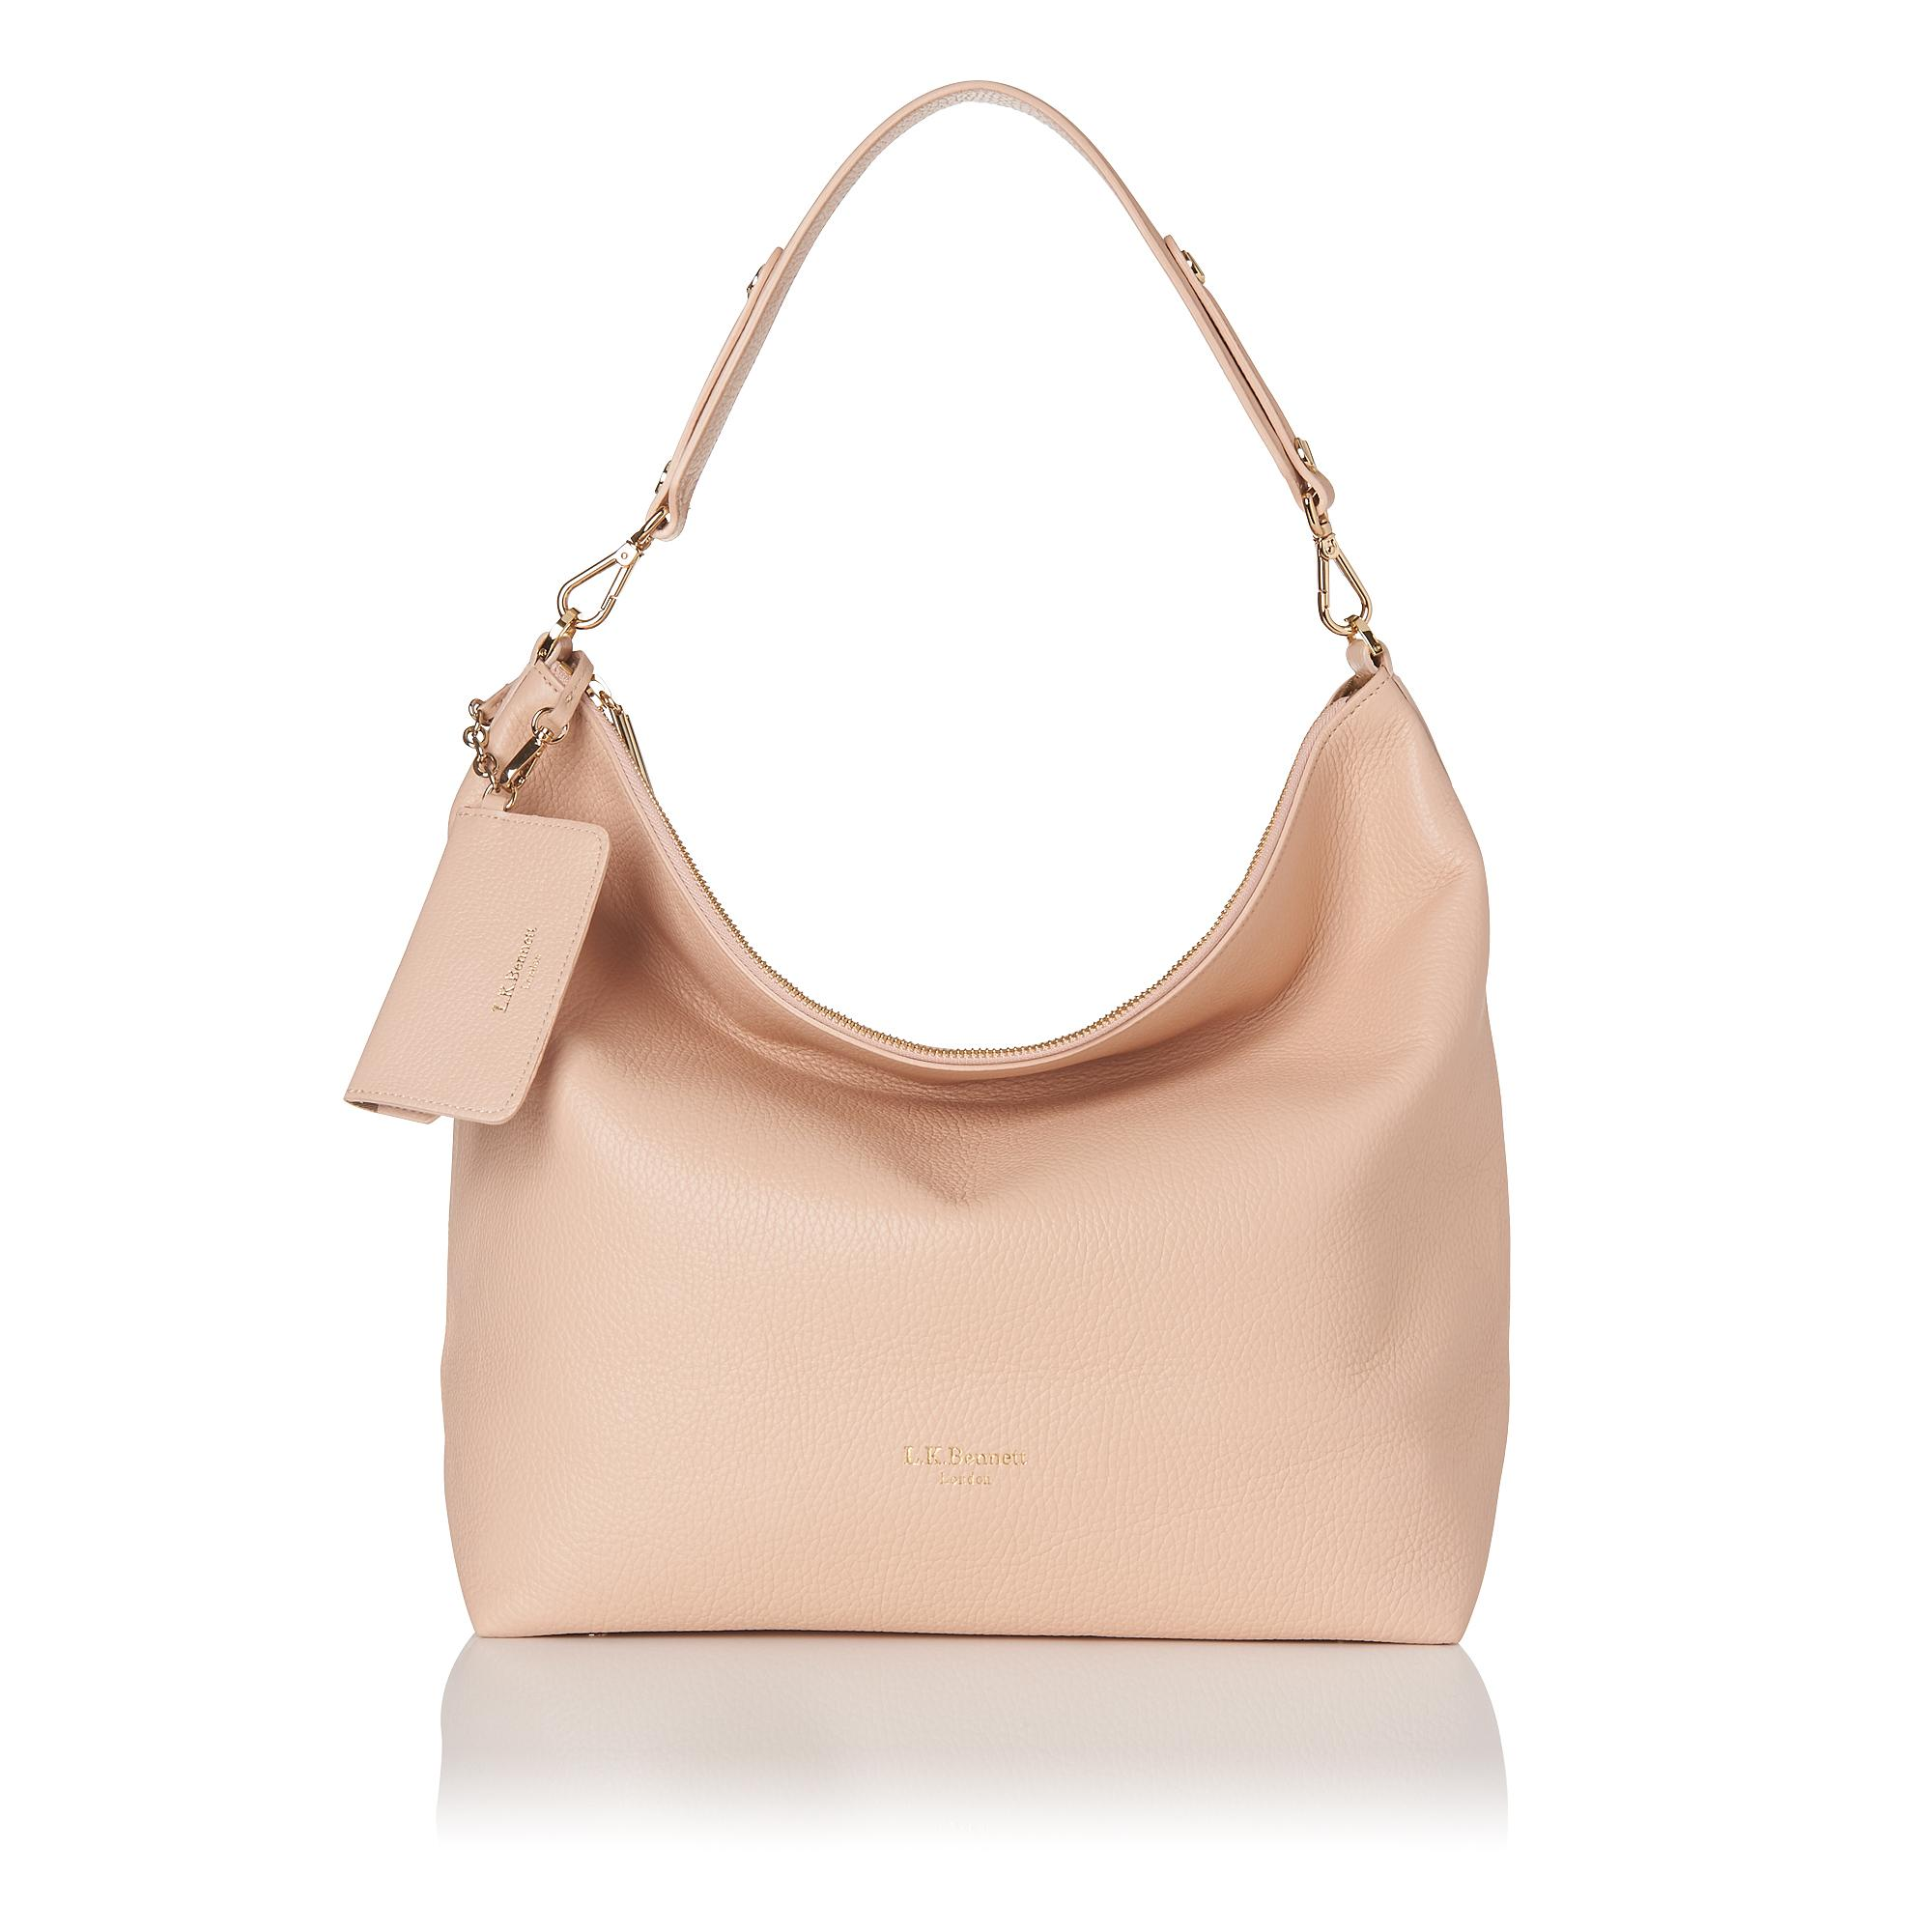 Bobbie Leather Work Shoulder Bag Compare Bluewater Coach Swagger 20 In Pebbled Peach